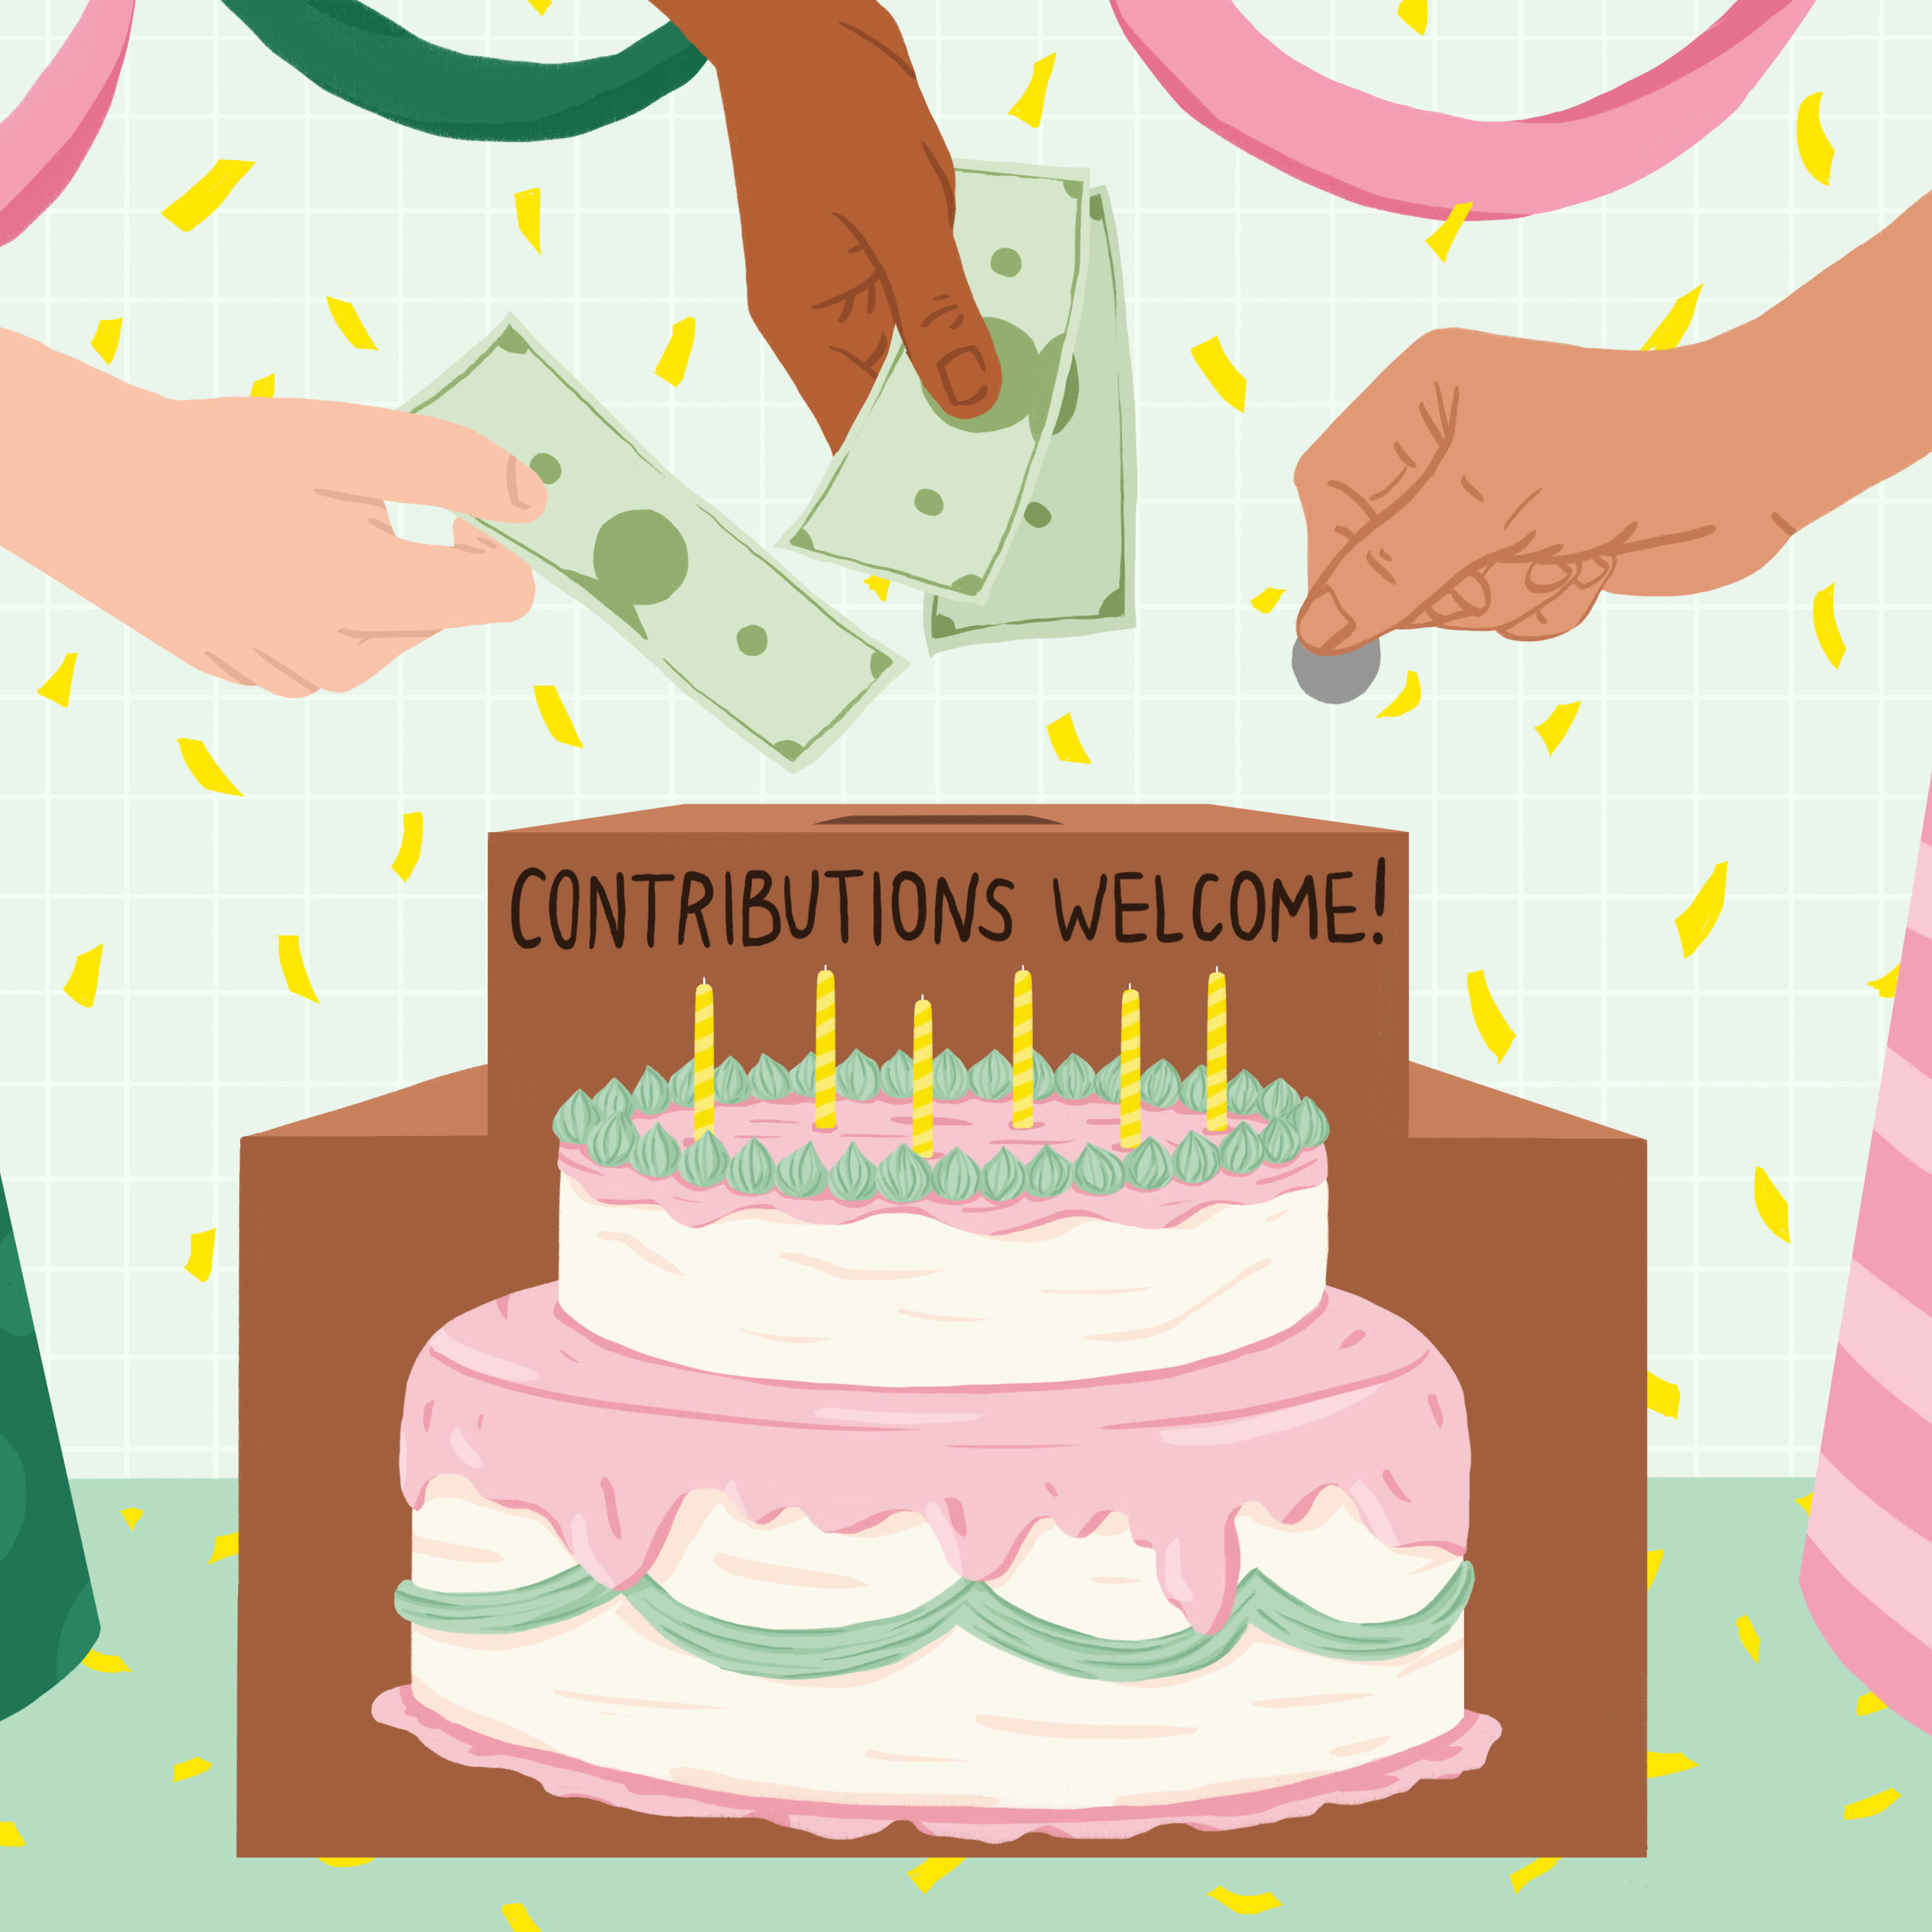 box shaped like a birthday cake with contribution slot and hands contributing money